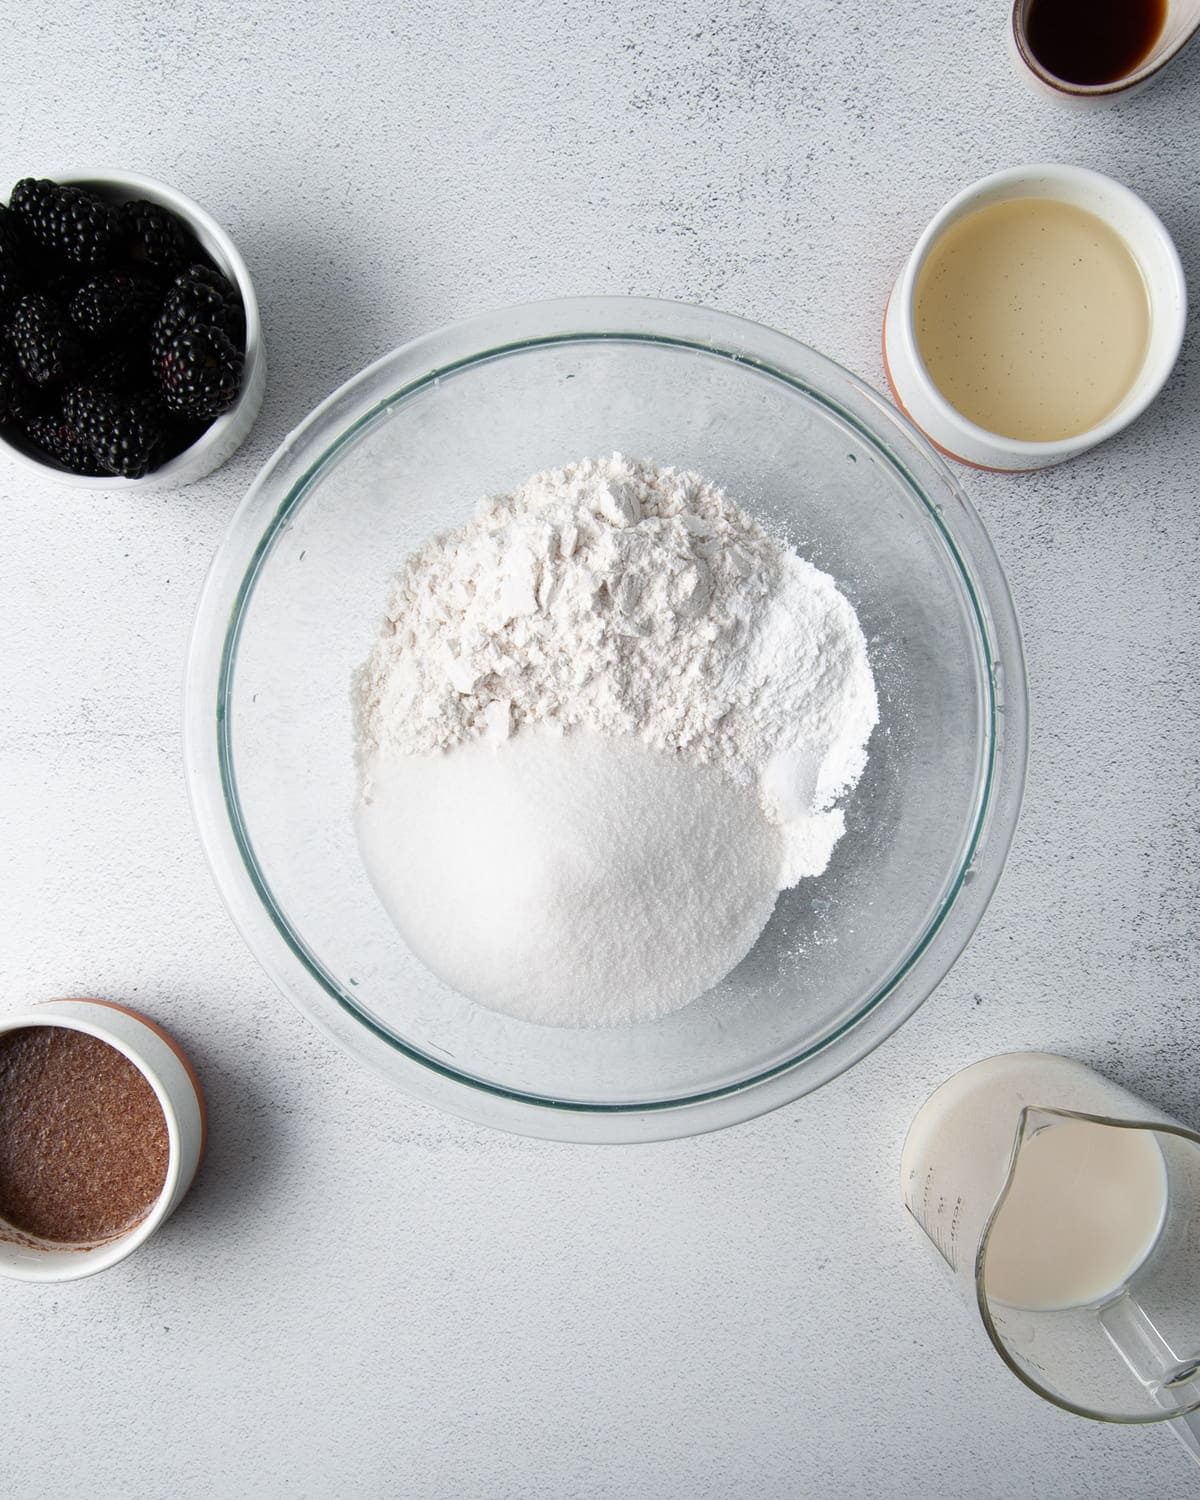 dry ingredients for muffin batter in a large mixing bowl